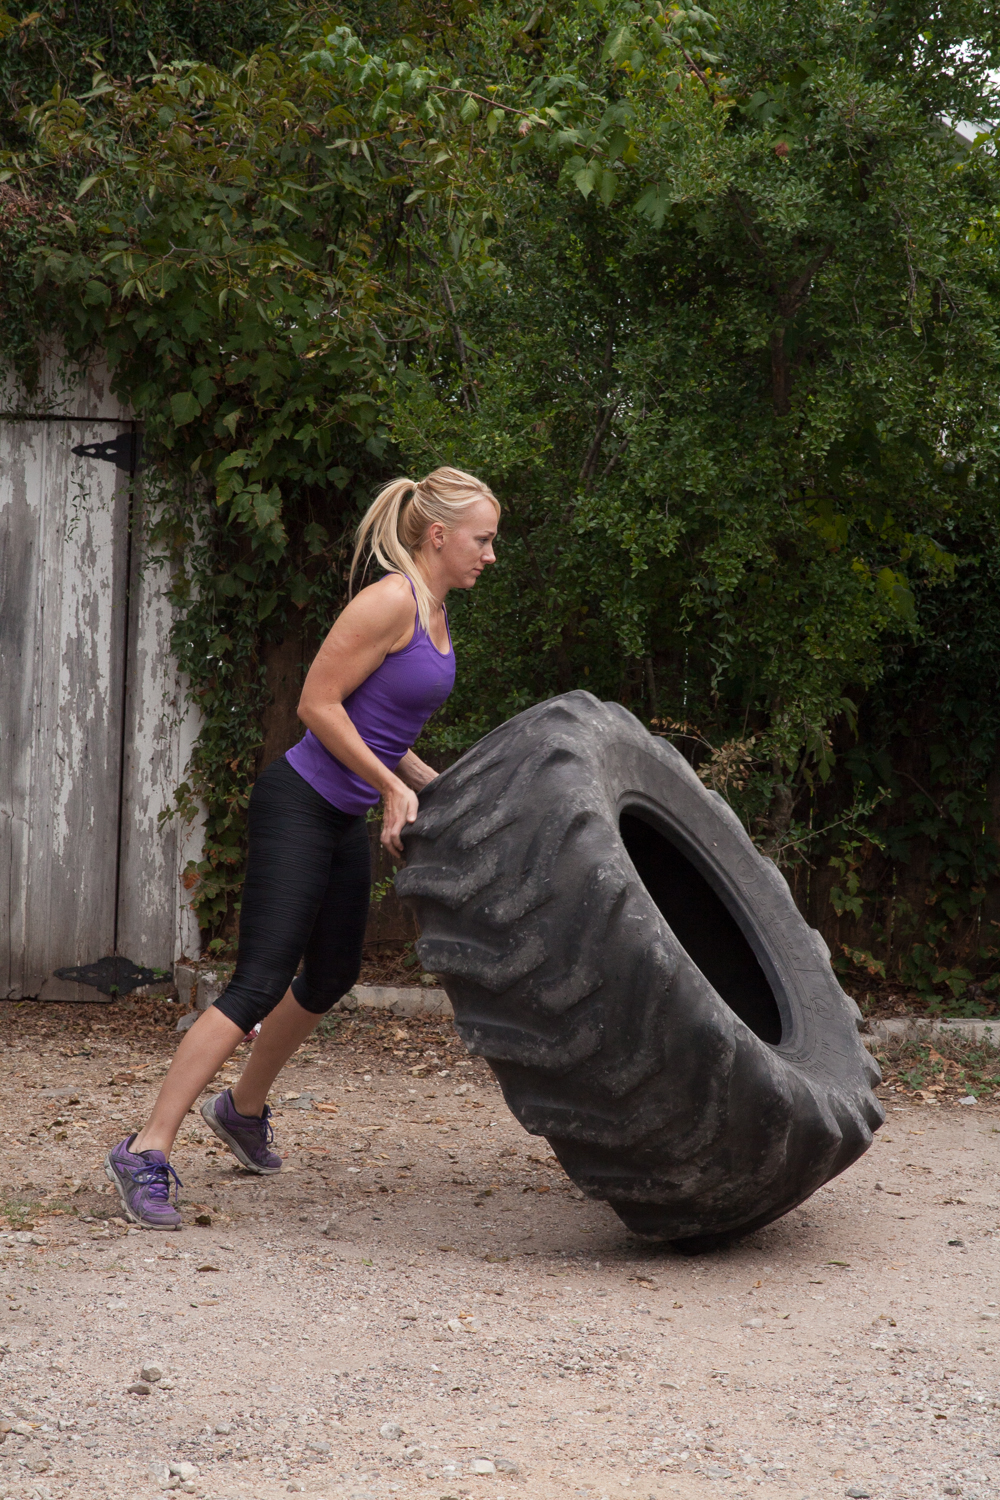 Tire flipping. Photo by  Becca Ewing